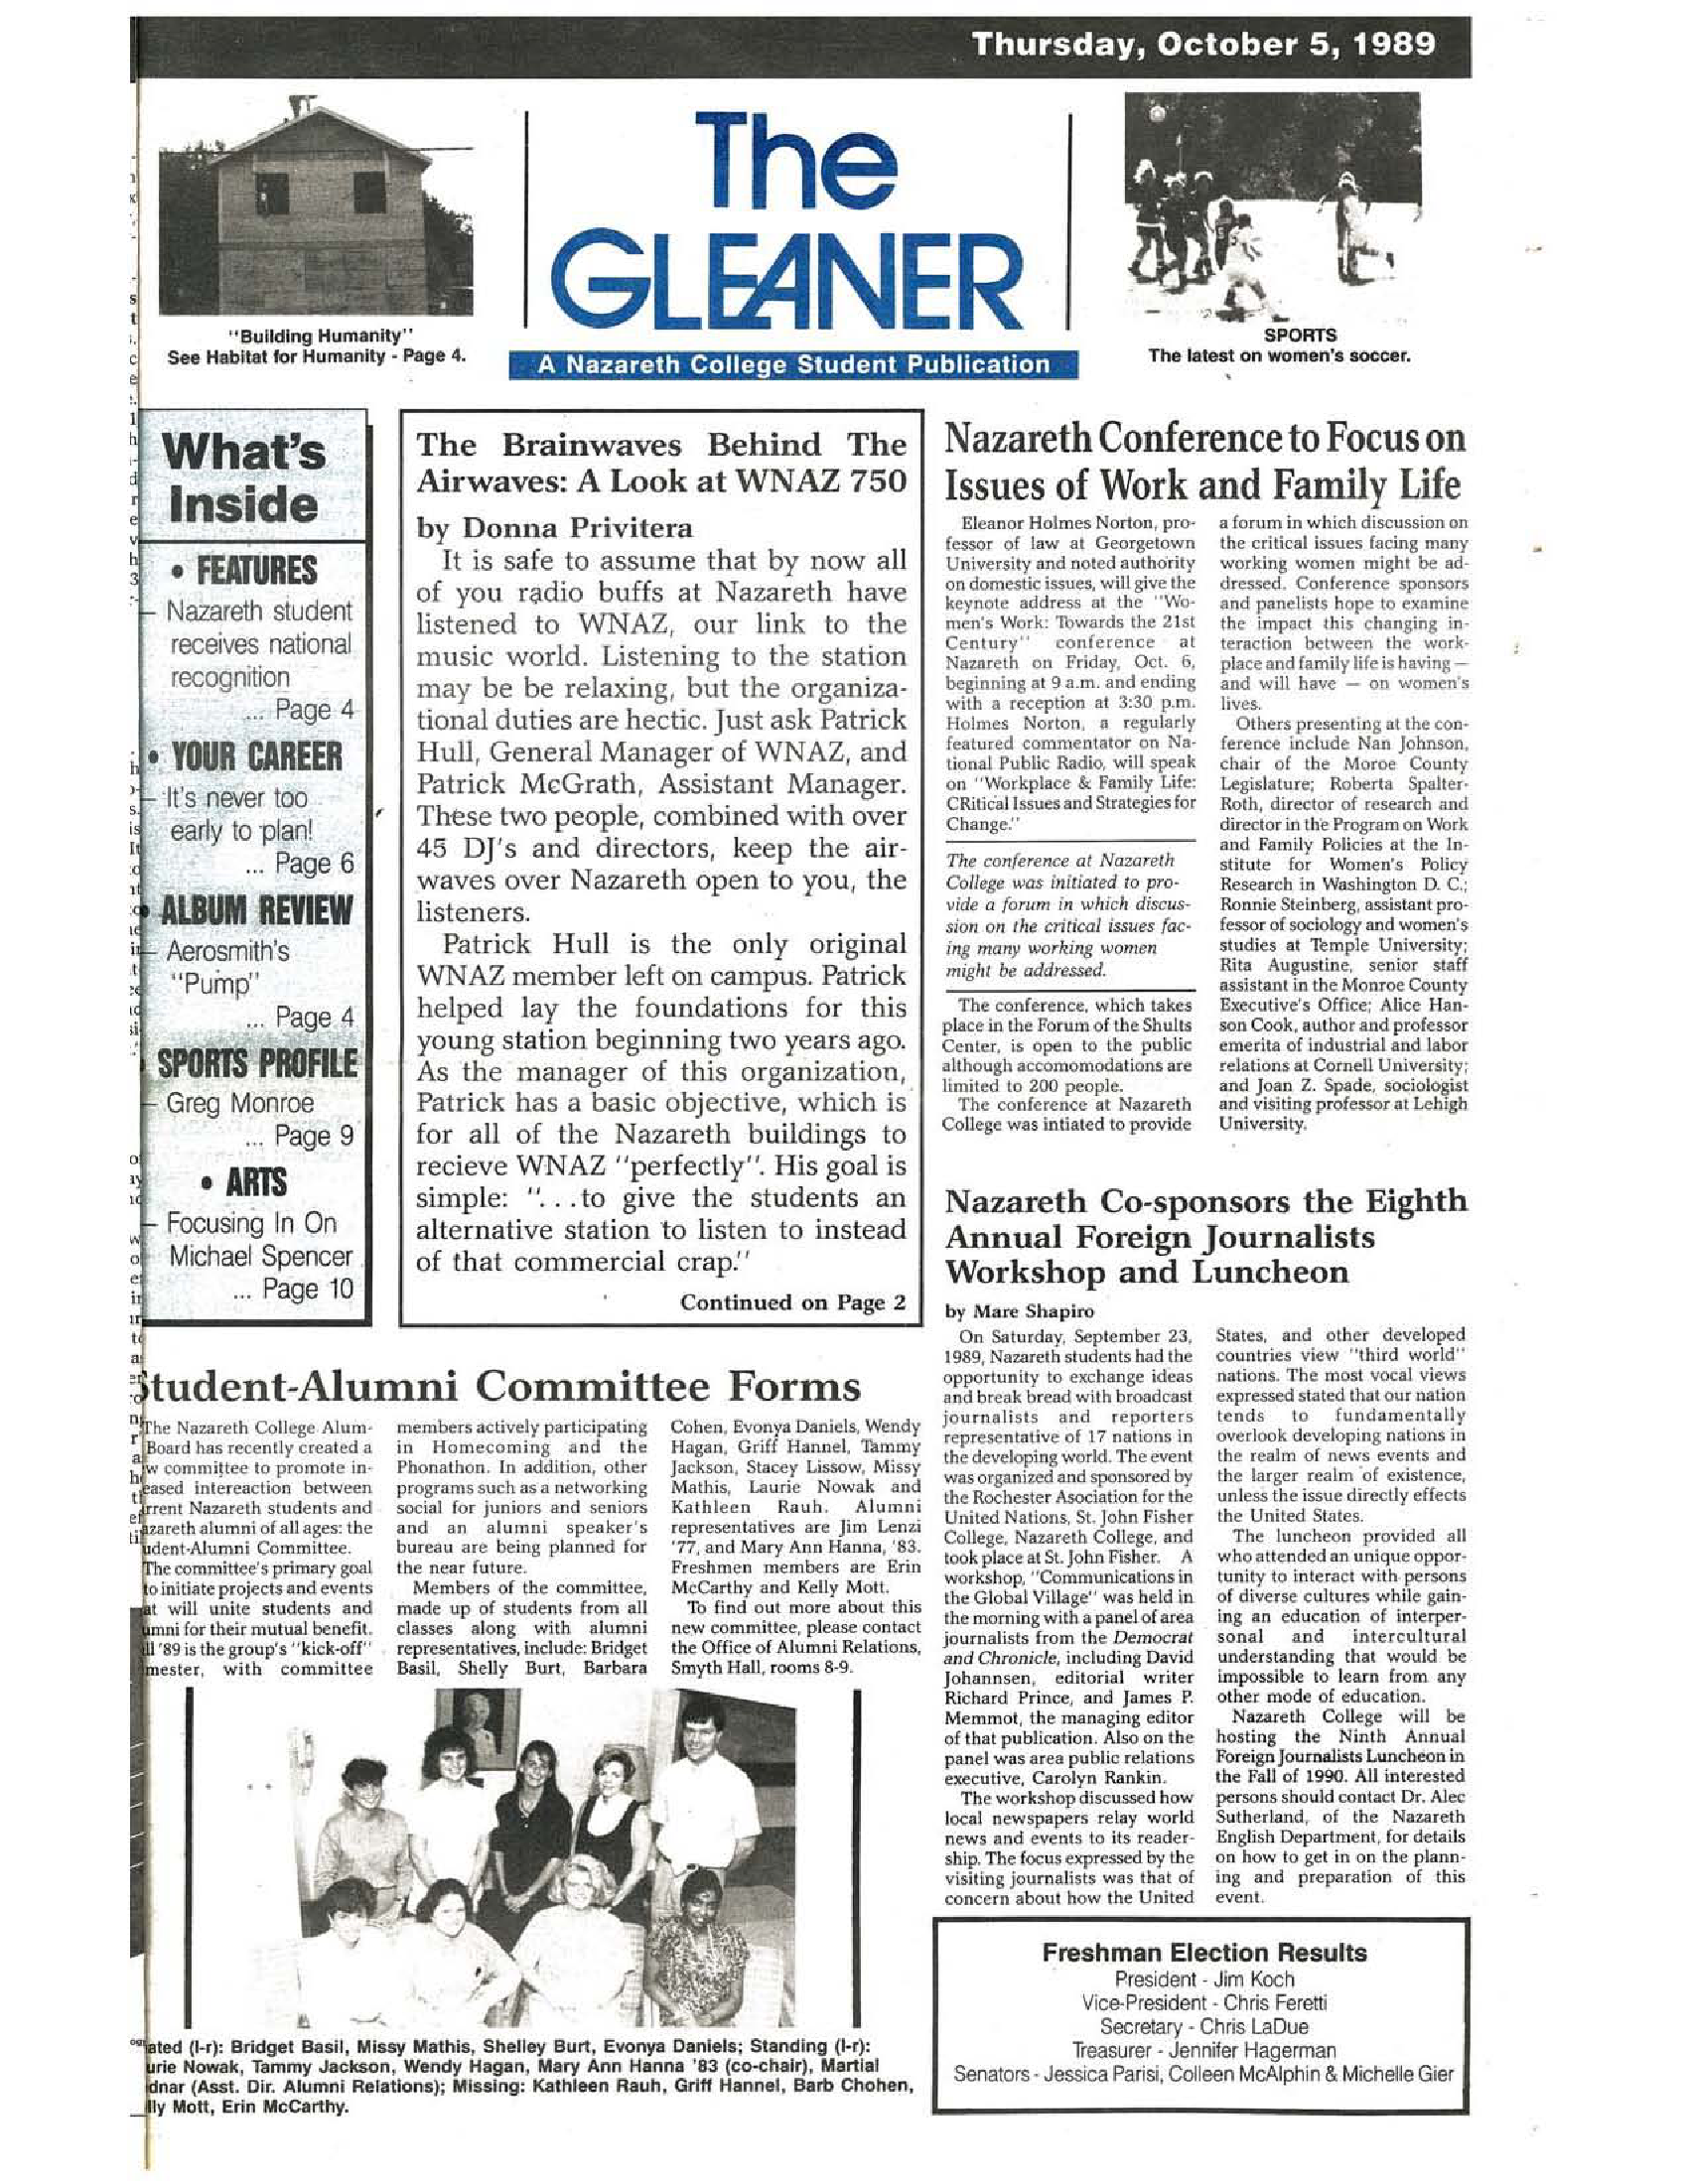 Gleaner_19891005 - Nazareth College - New York Heritage Digital